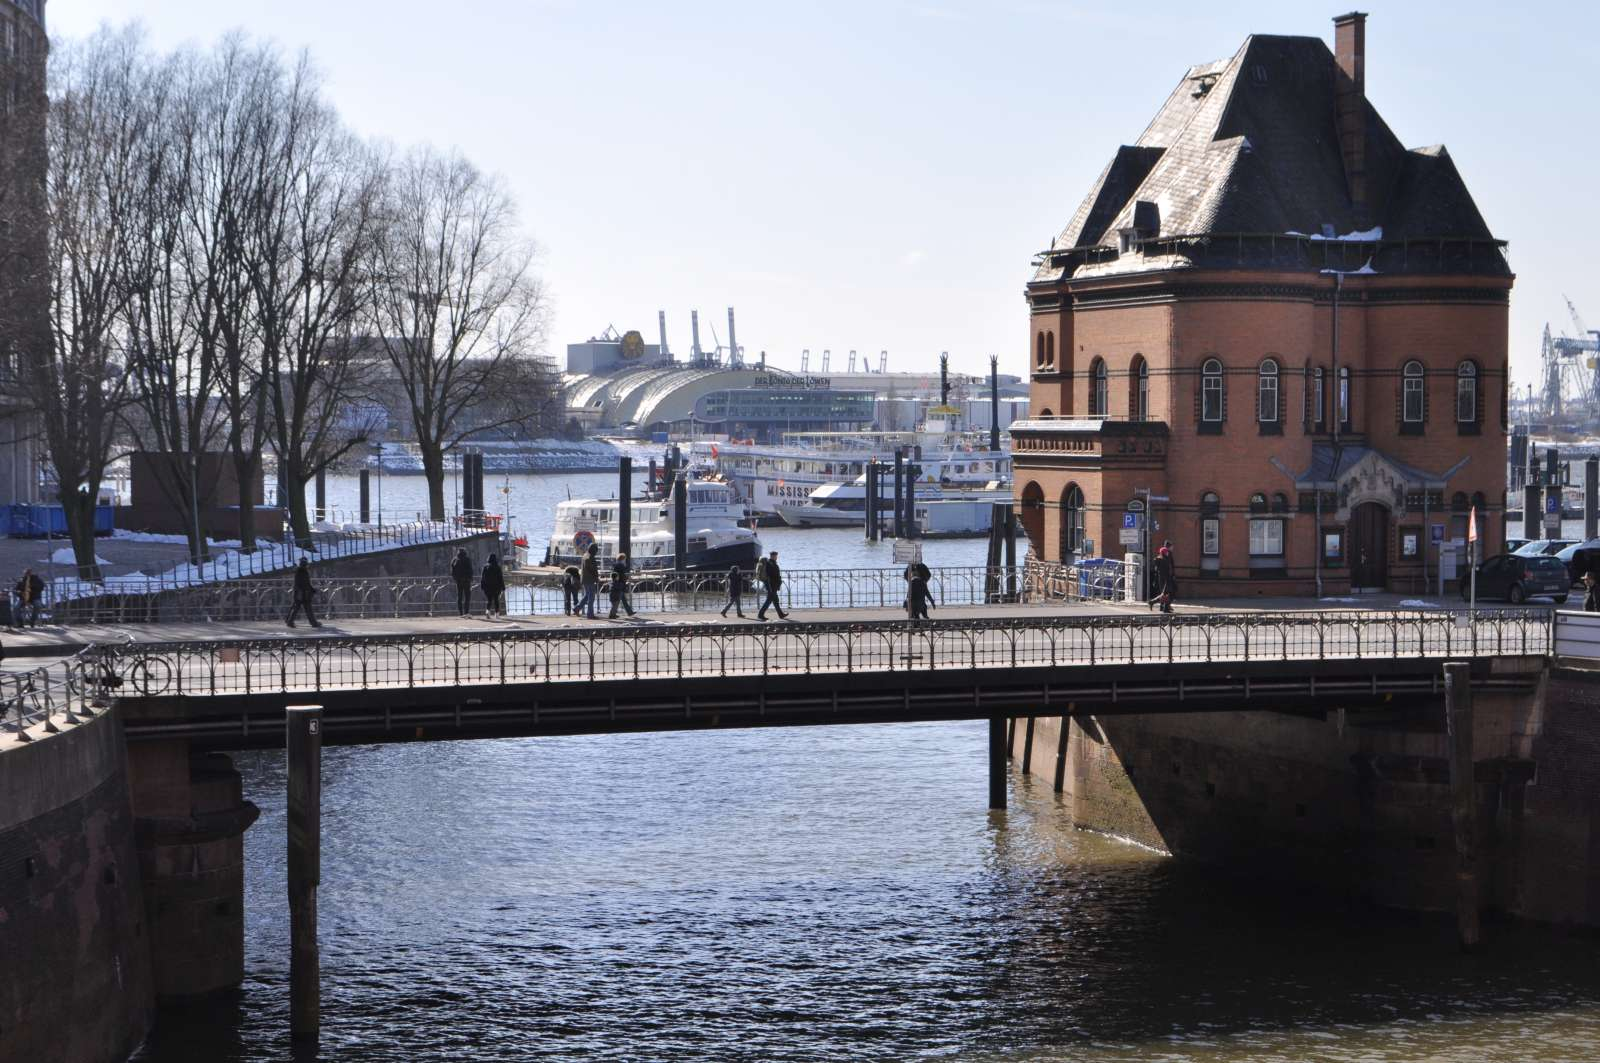 Wilhelminenbrücke / Foto: Ajepbah [CC BY-SA 3.0 (https://creativecommons.org/licenses/by-sa/3.0)], from Wikimedia Commons